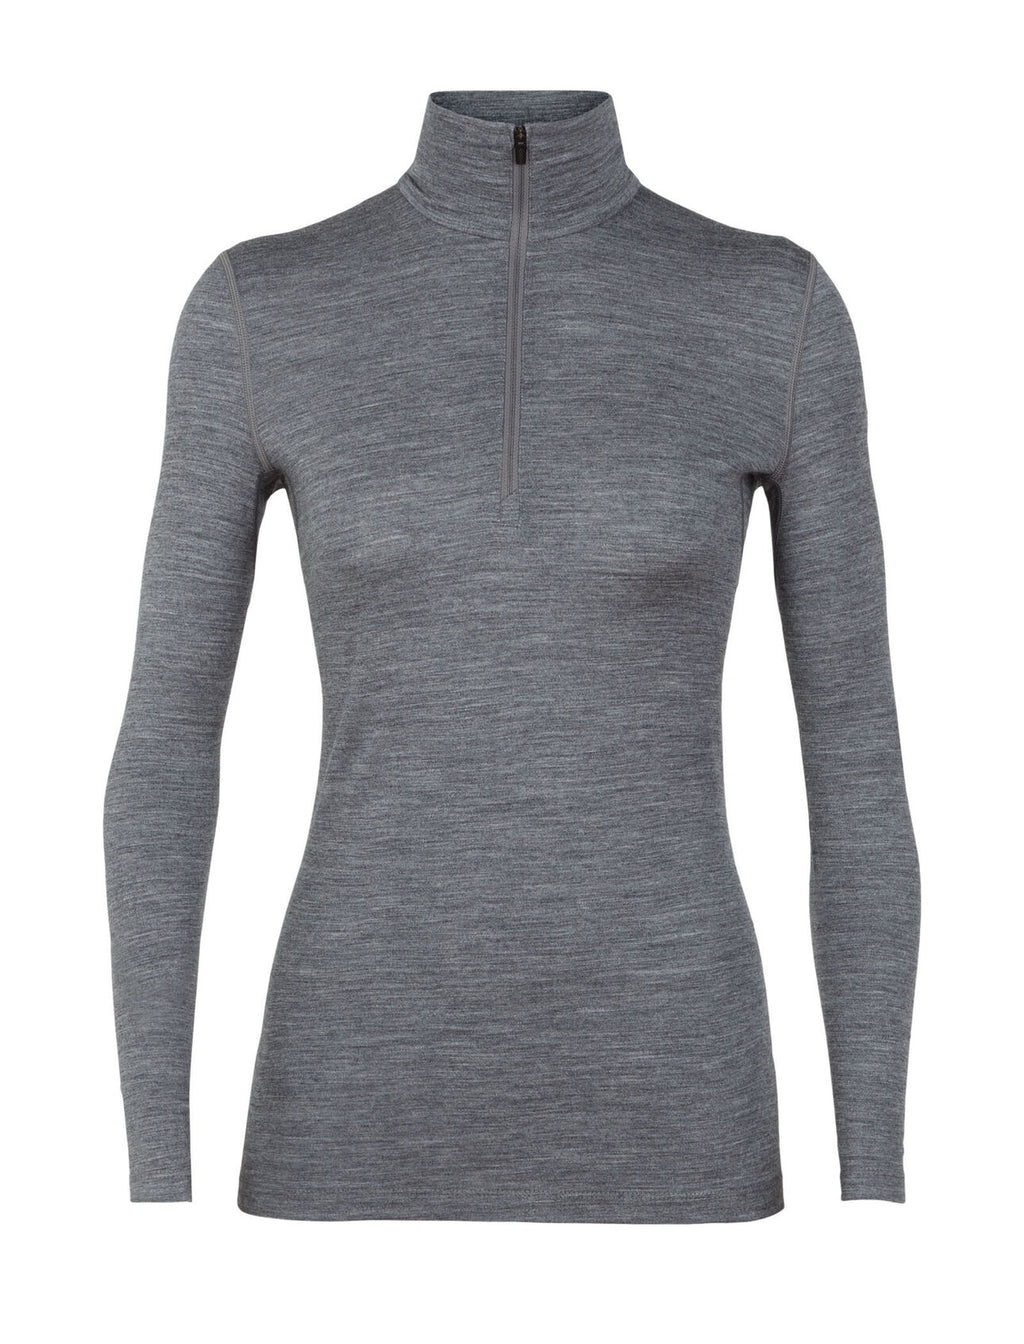 Women's Merino 200 Oasis Long Sleeve Half Zip Thermal Top